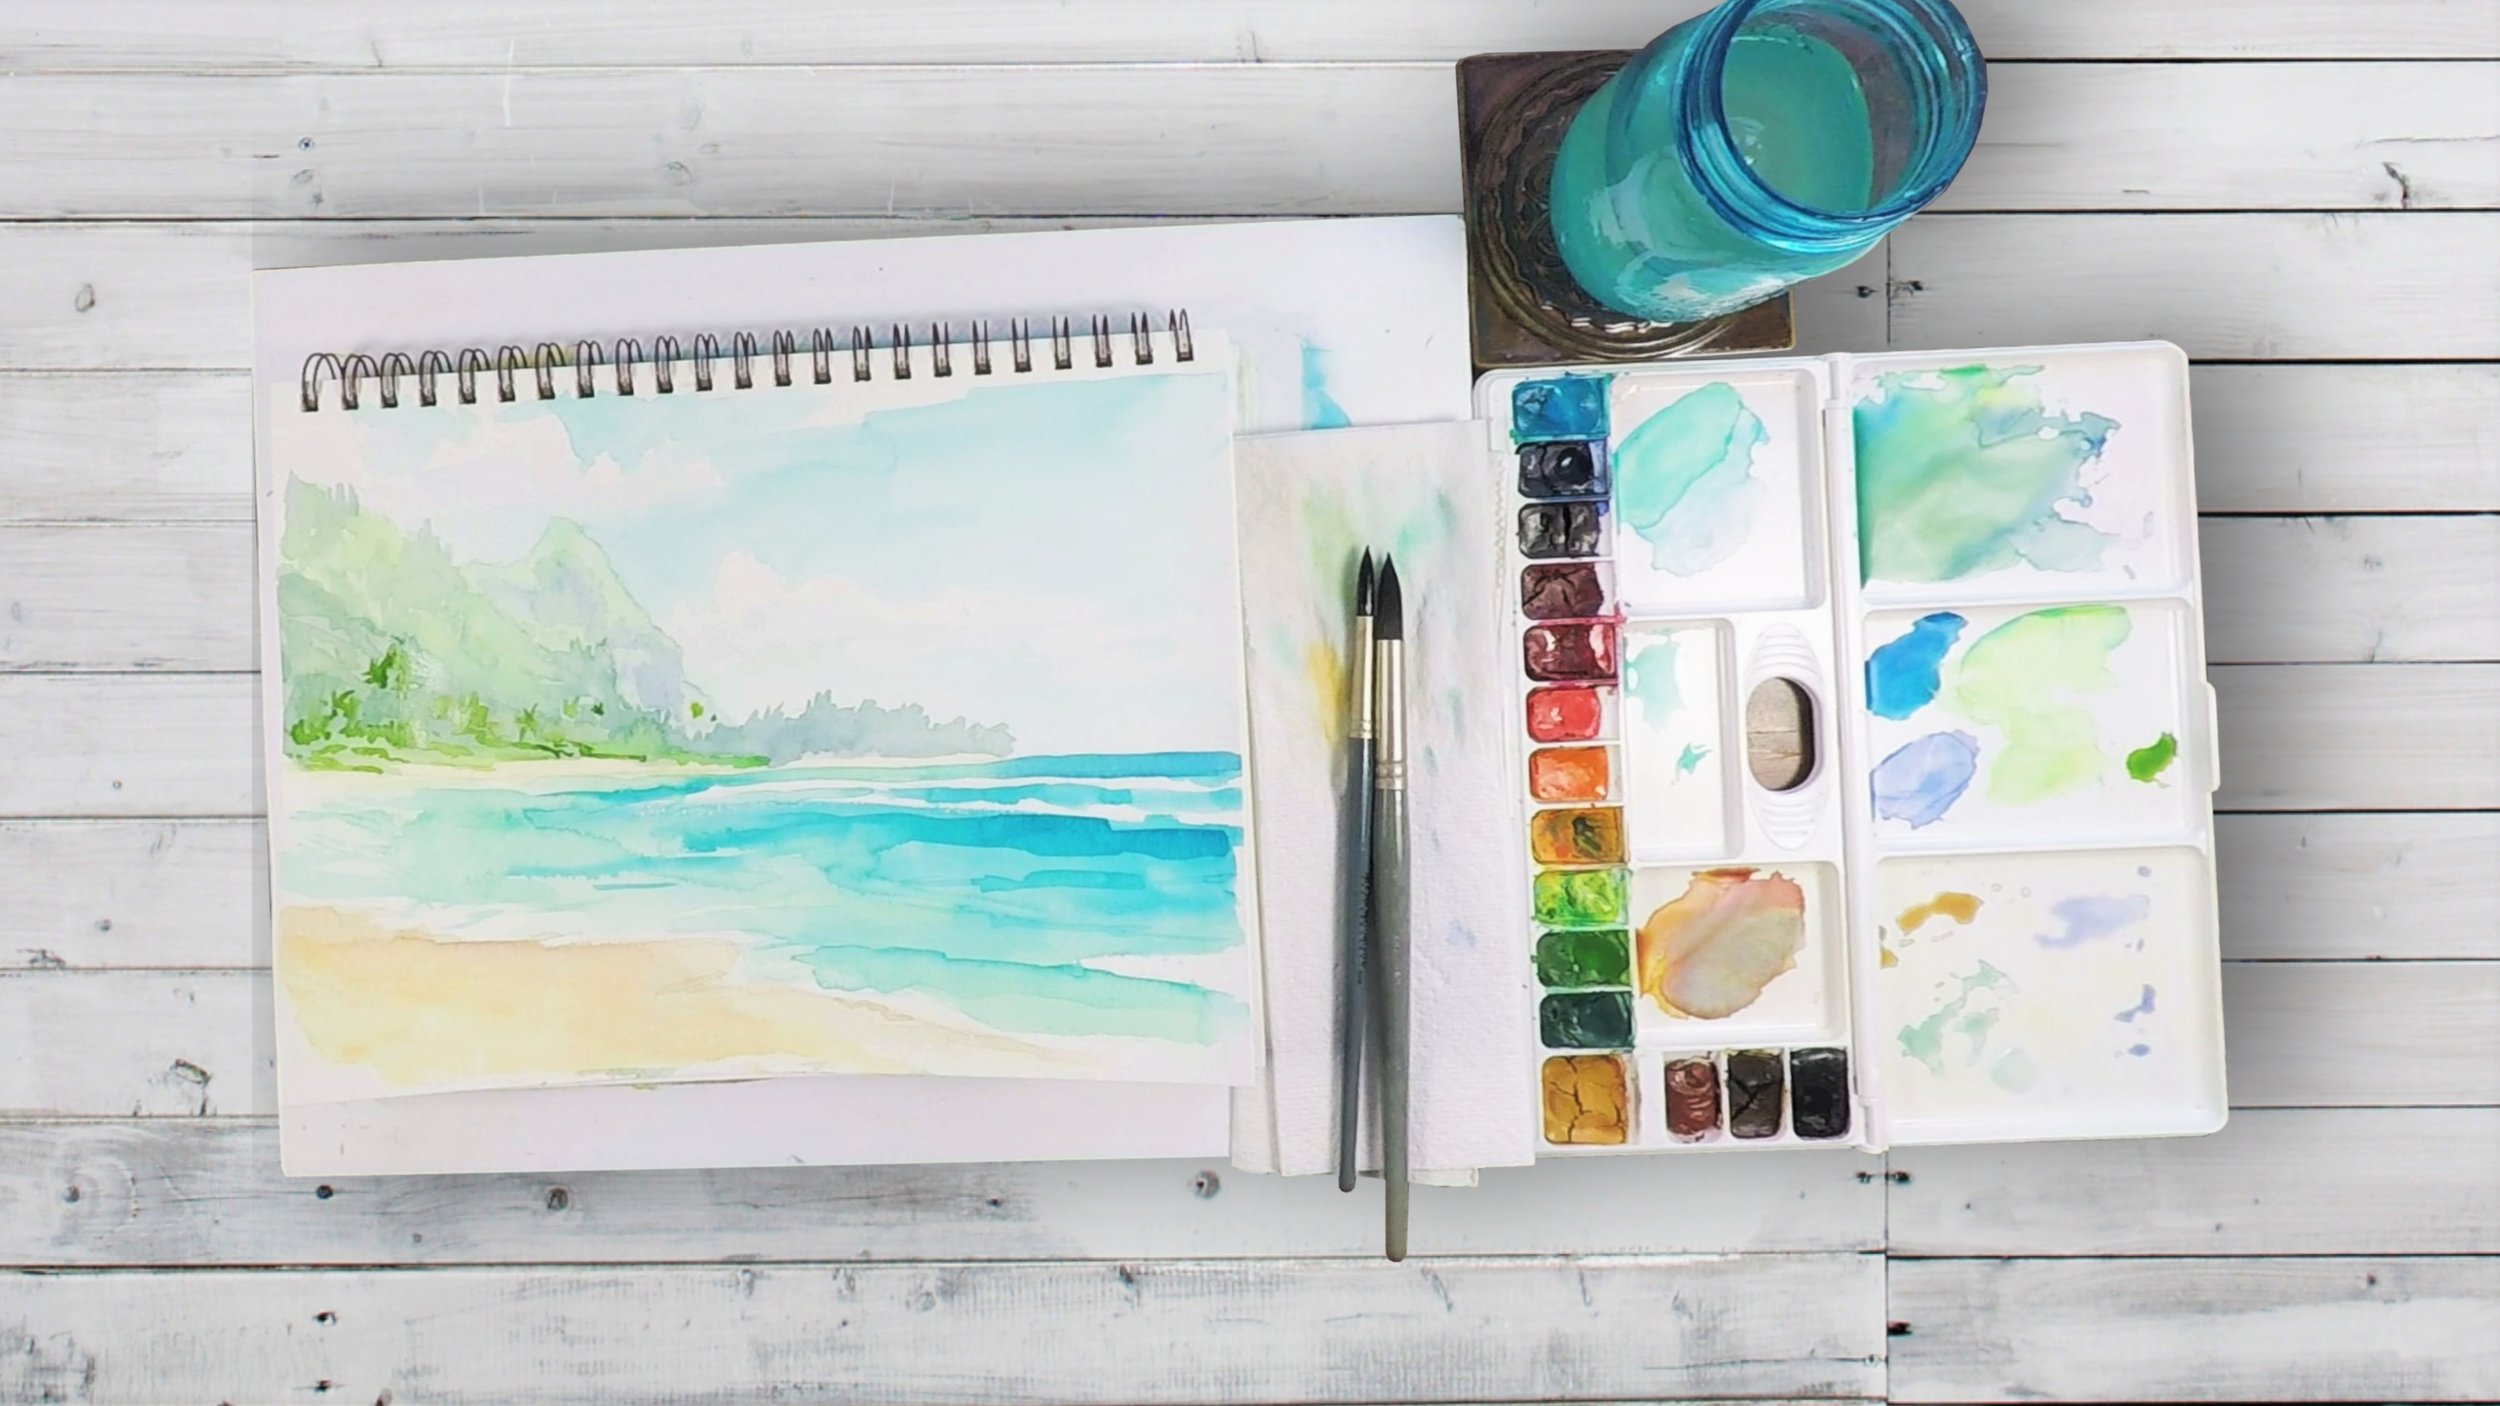 MONTHLY PROJECT KIT $45 - UNLIMITED ACCESS & SUPPLIES TO PAINT ALONG